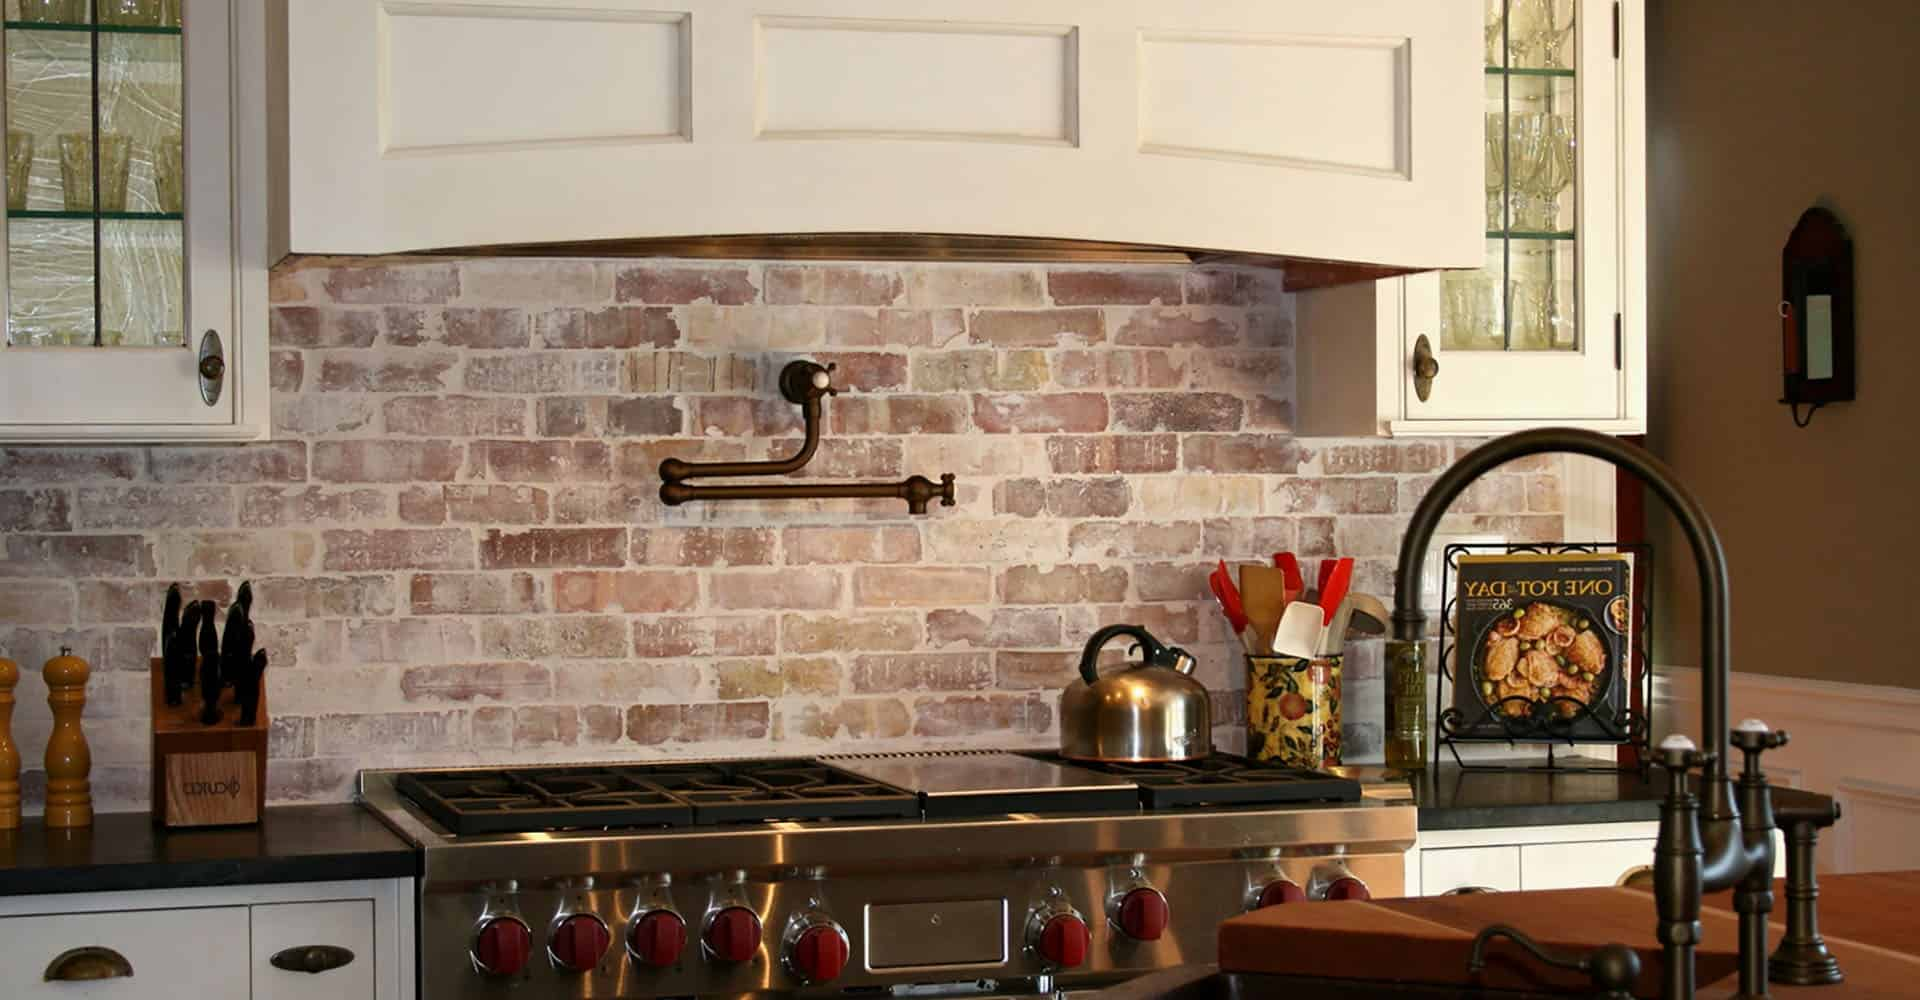 enchanting faux brick backsplash kitchen | 11 Kitchen Backsplash Ideas You Should Consider